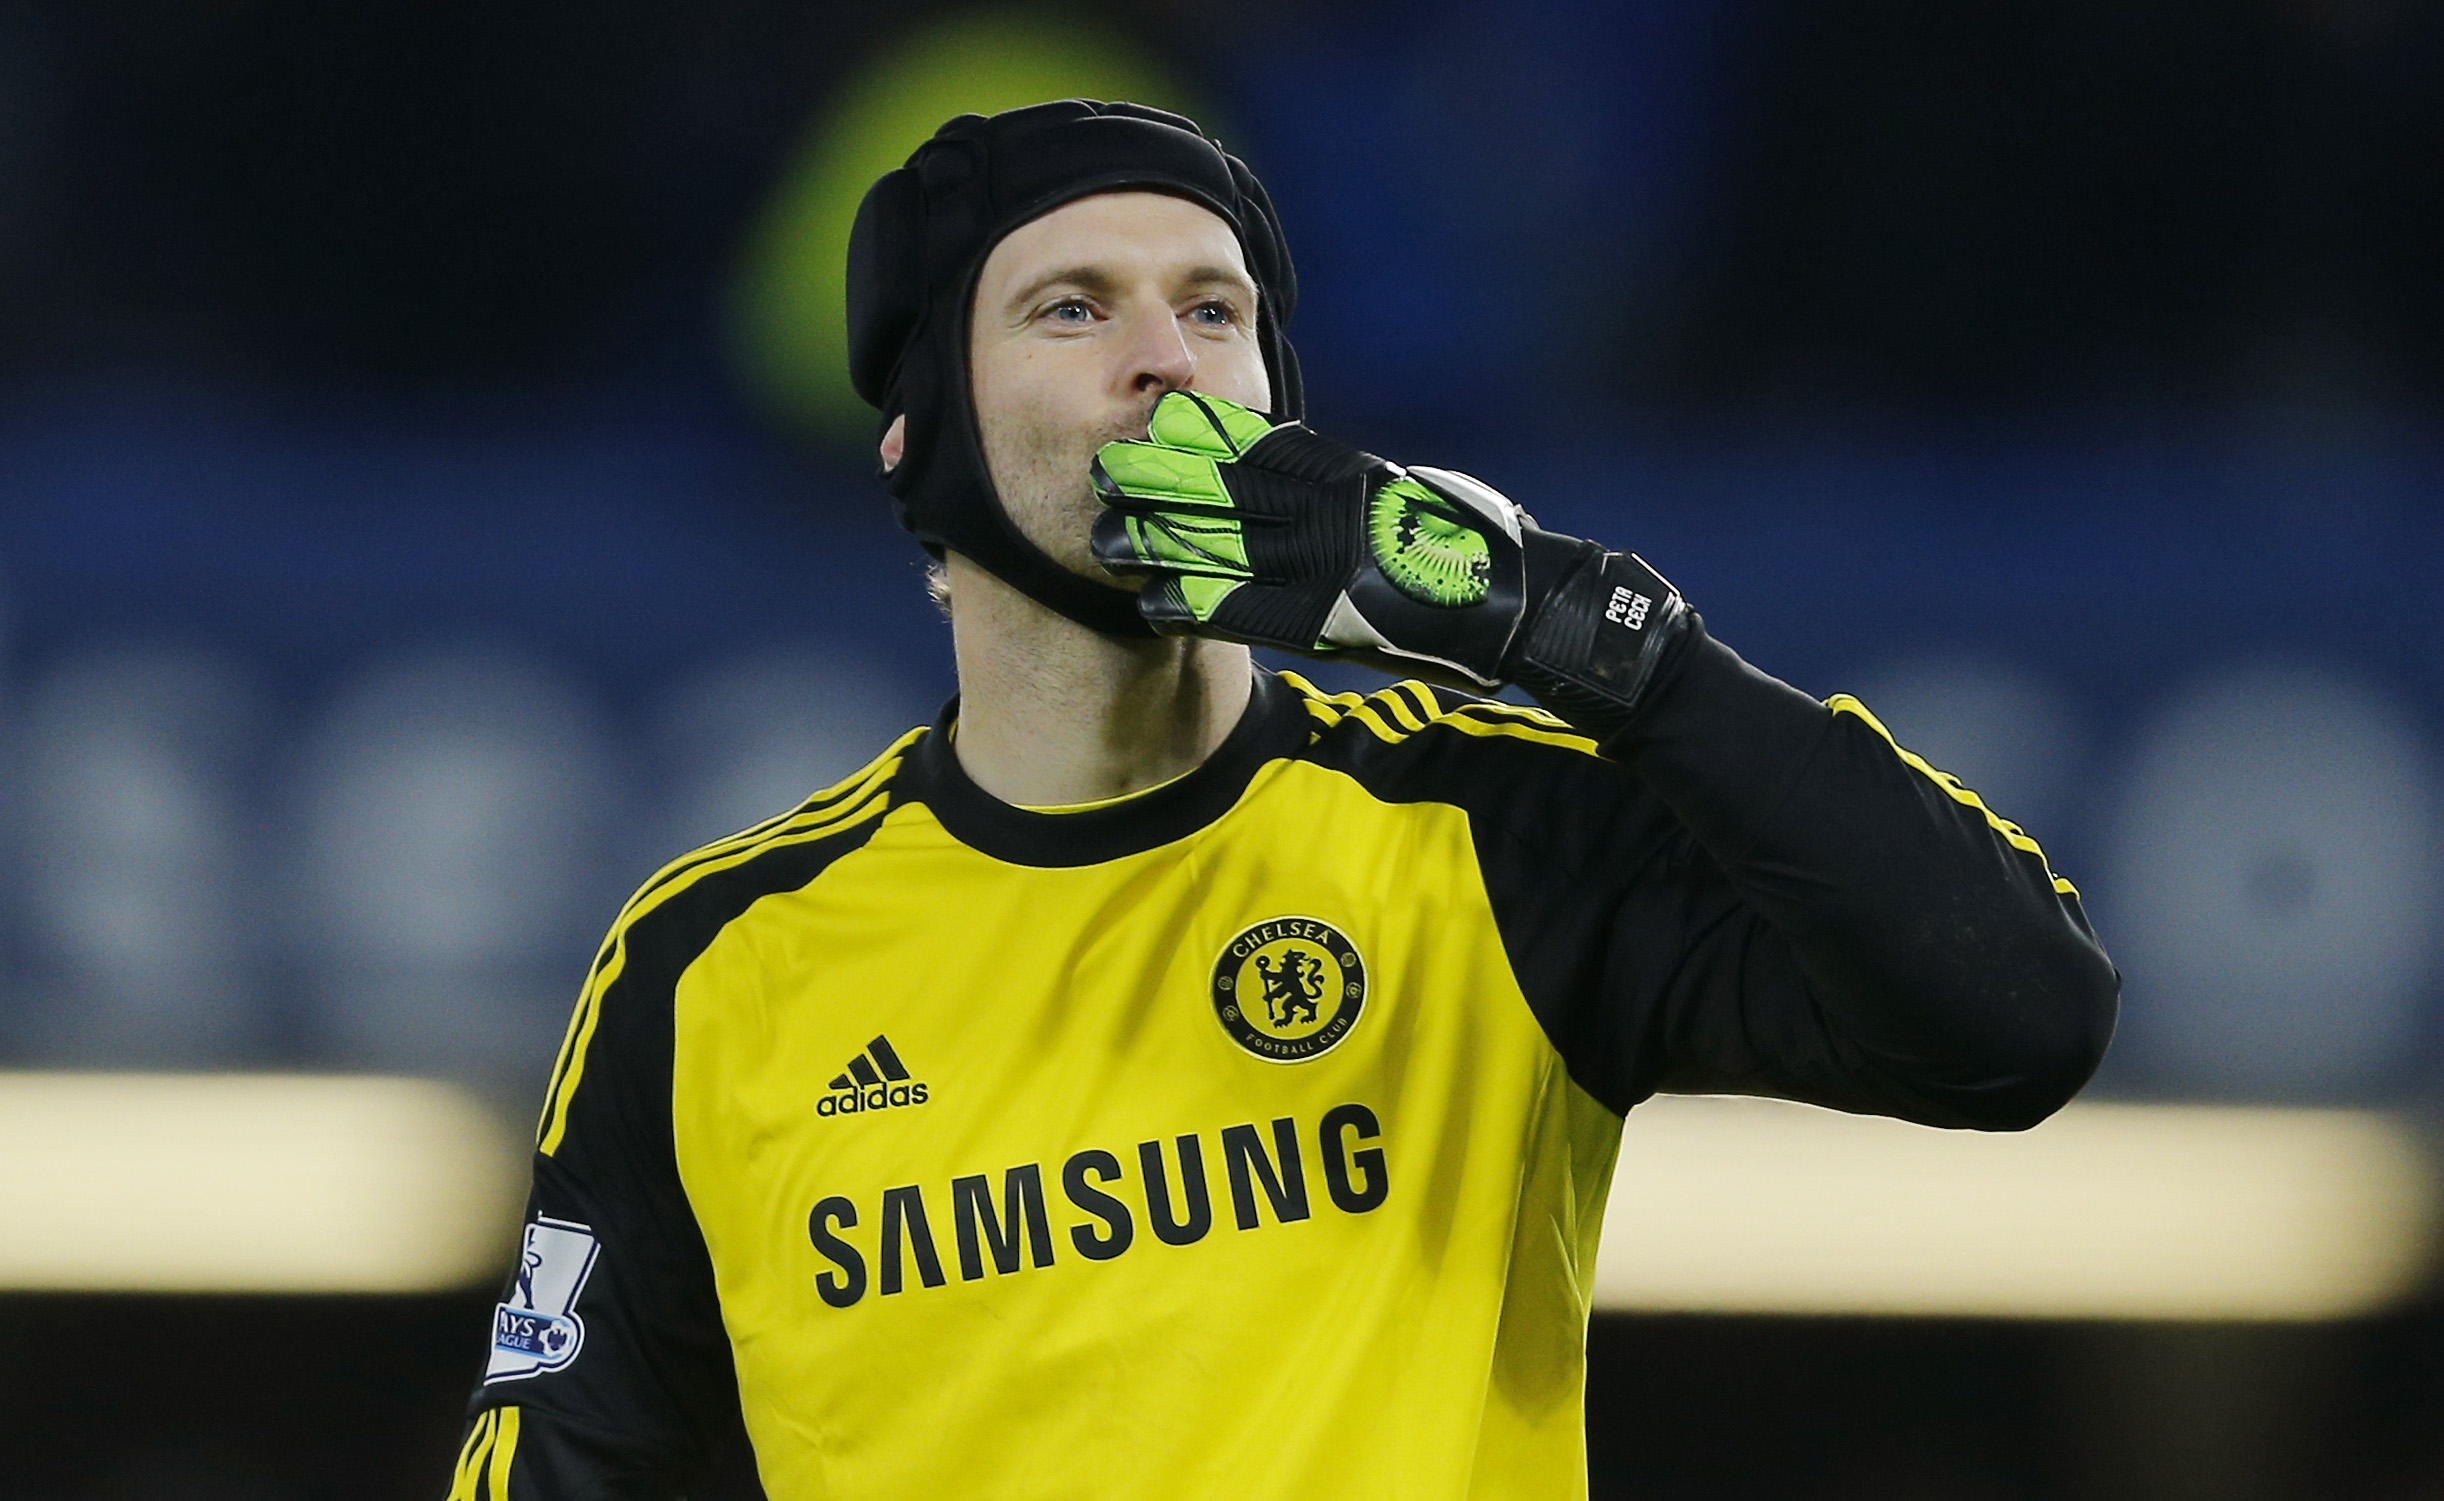 Petr Cech video accident injury